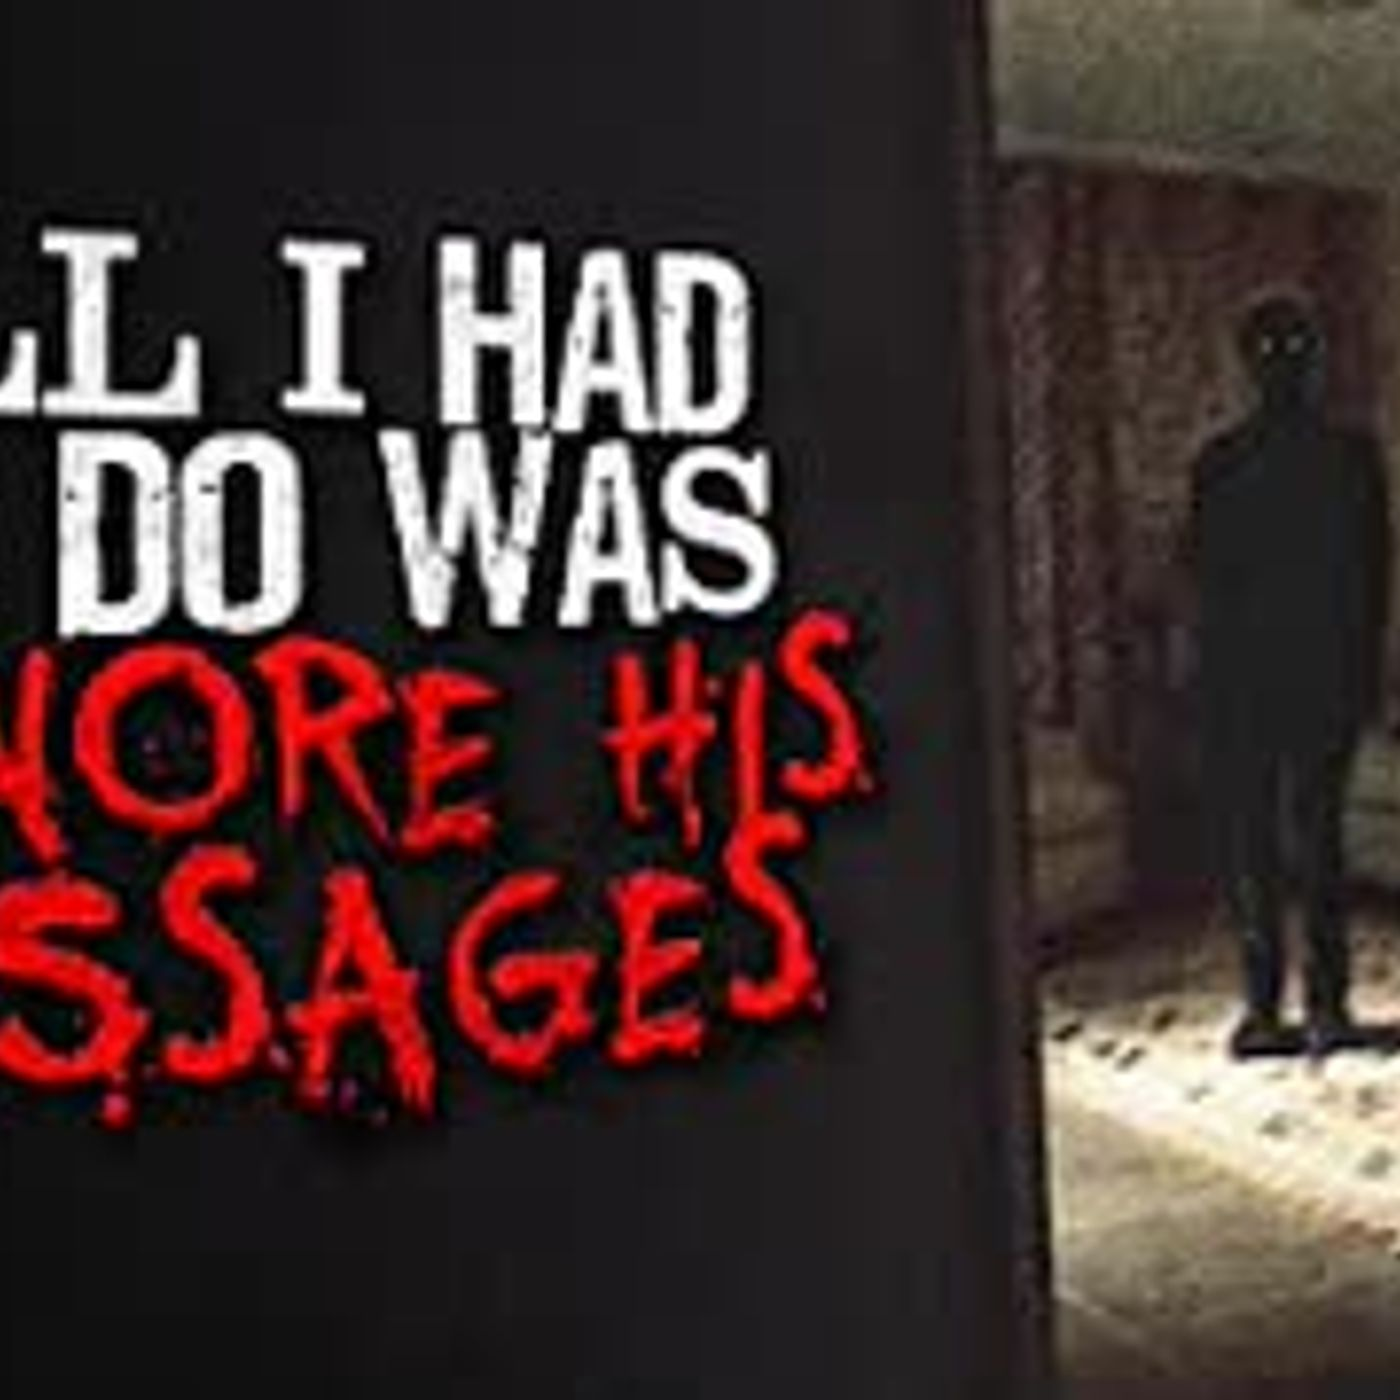 """All I had to do was ignore his messages"" Creepypasta"